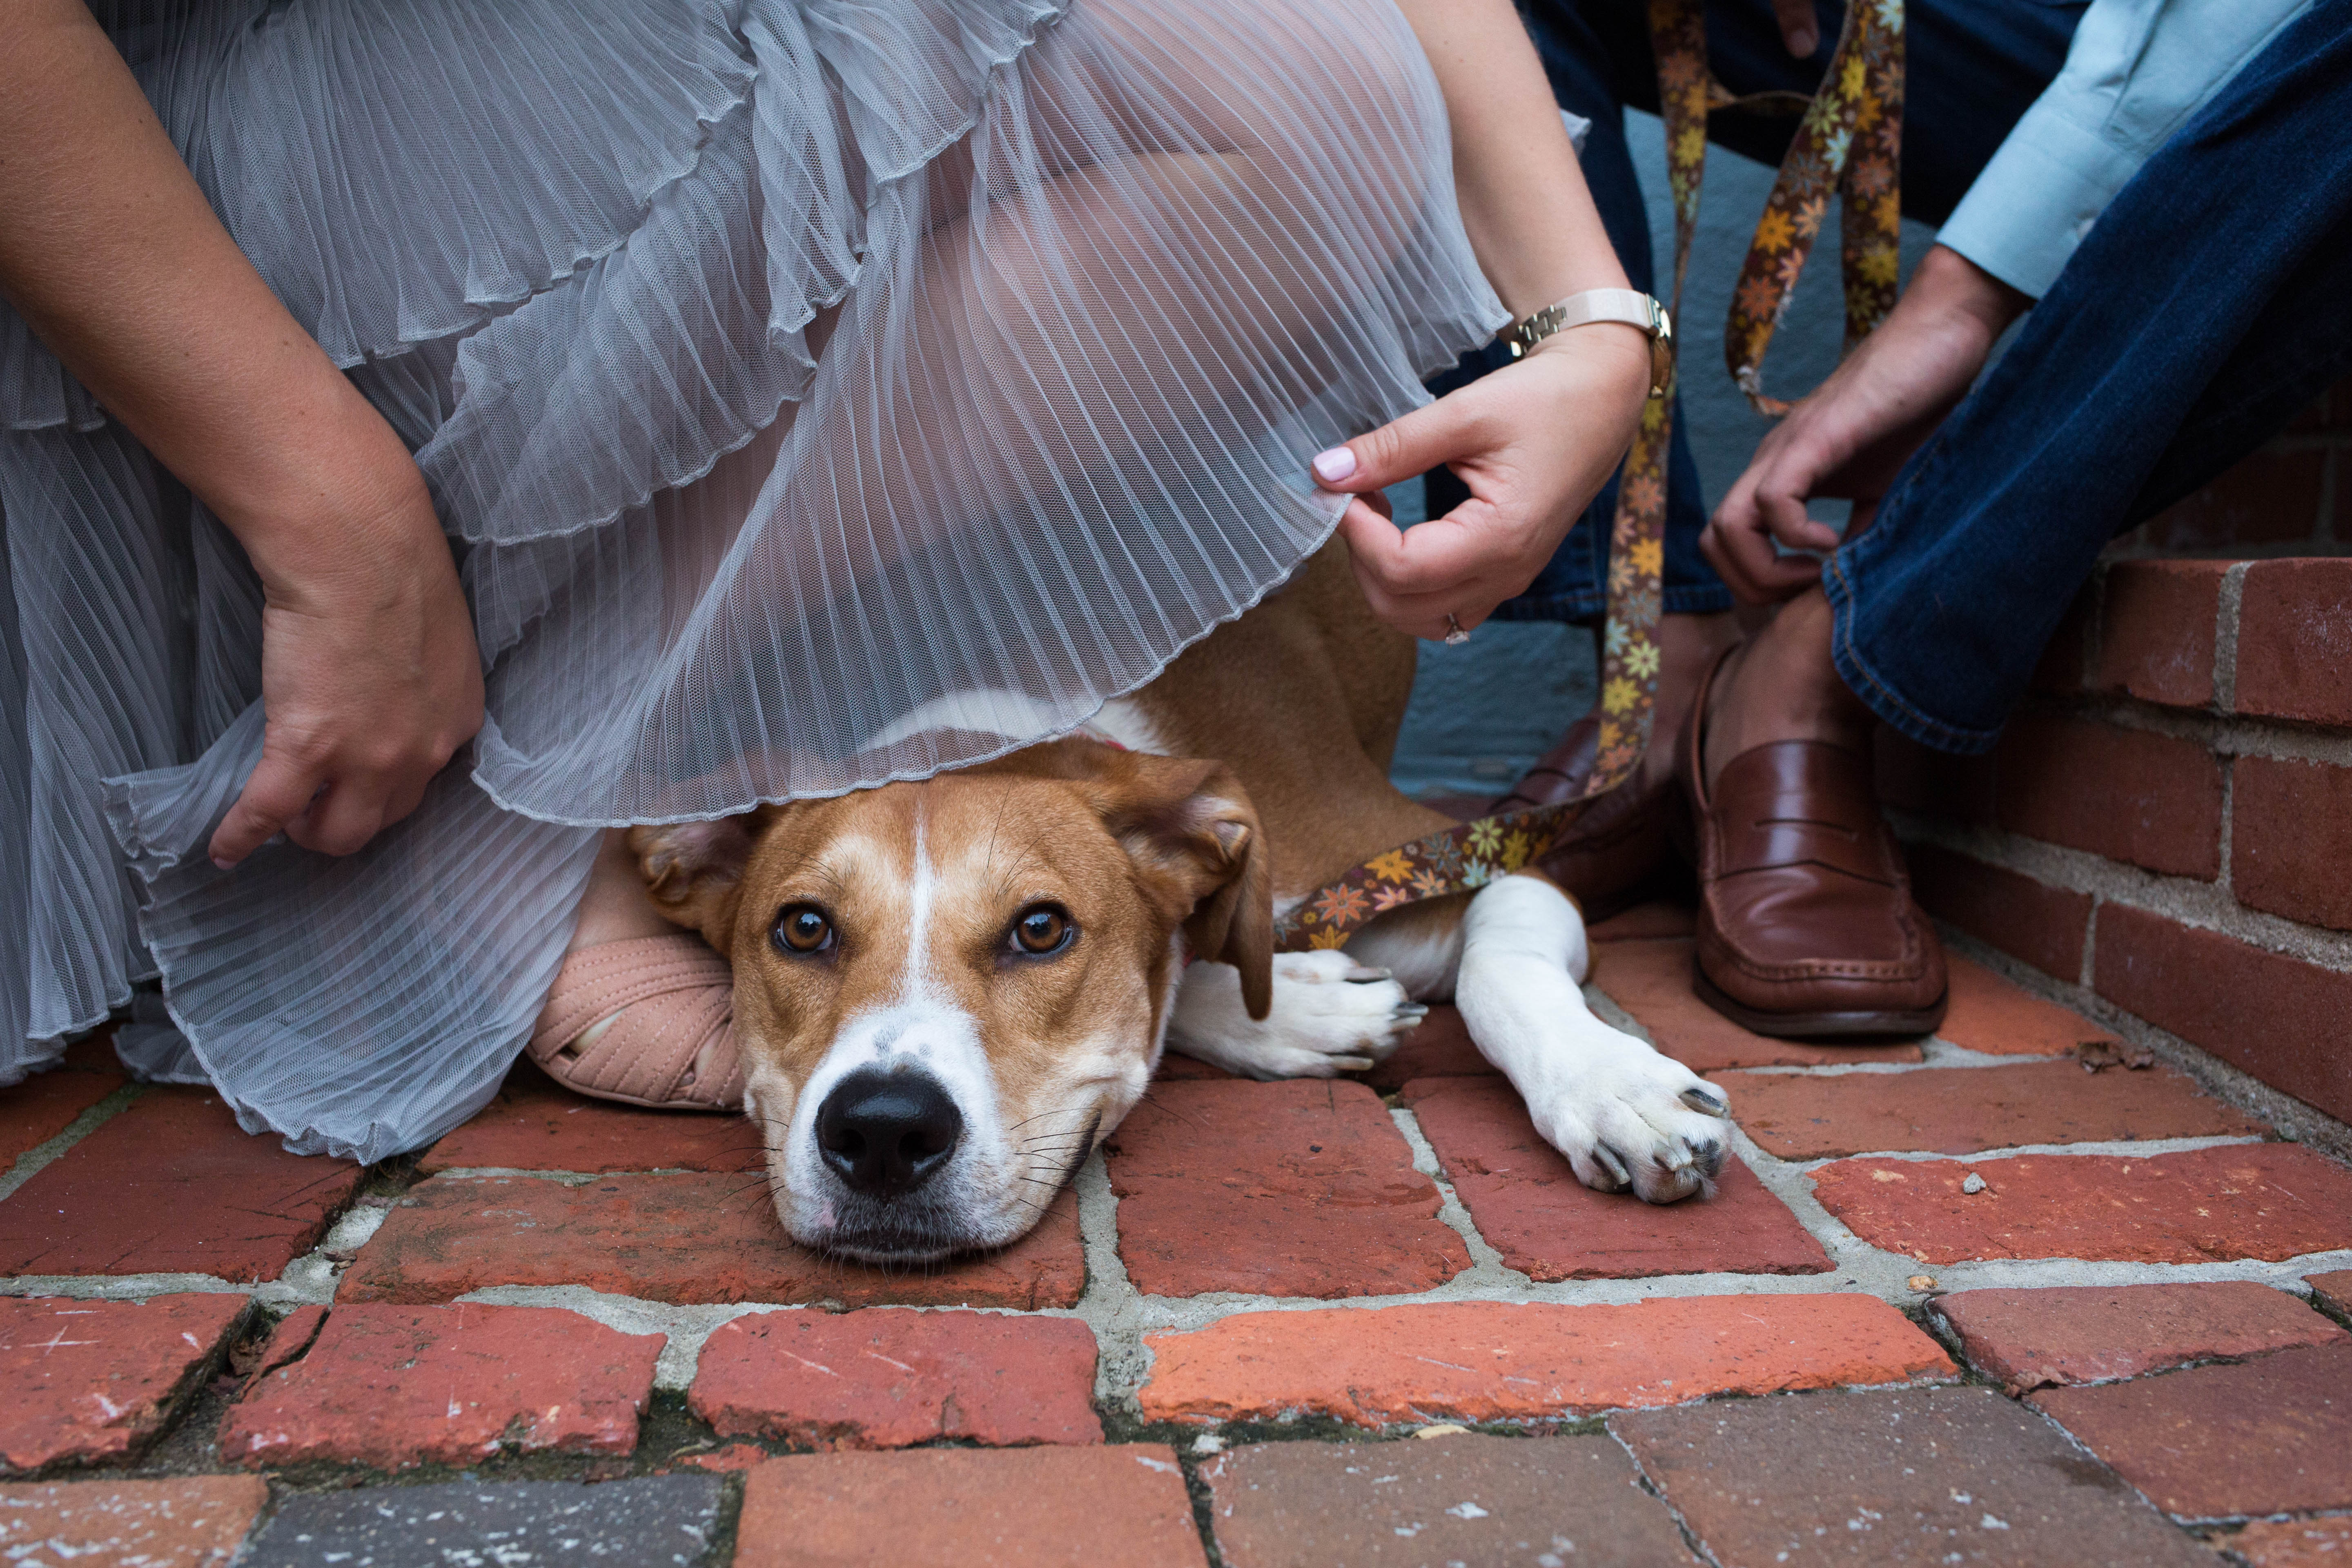 Saturday, August 18 is Clear The Shelters day, a national effort to find pets in shelters 'fur-ever' homes. If you're not sure about adoption, these dogs are proof you can find your hiking buddy, bed warmer and best friend this weekend. (Amanda Andrade-Rhoades/DC Refined)